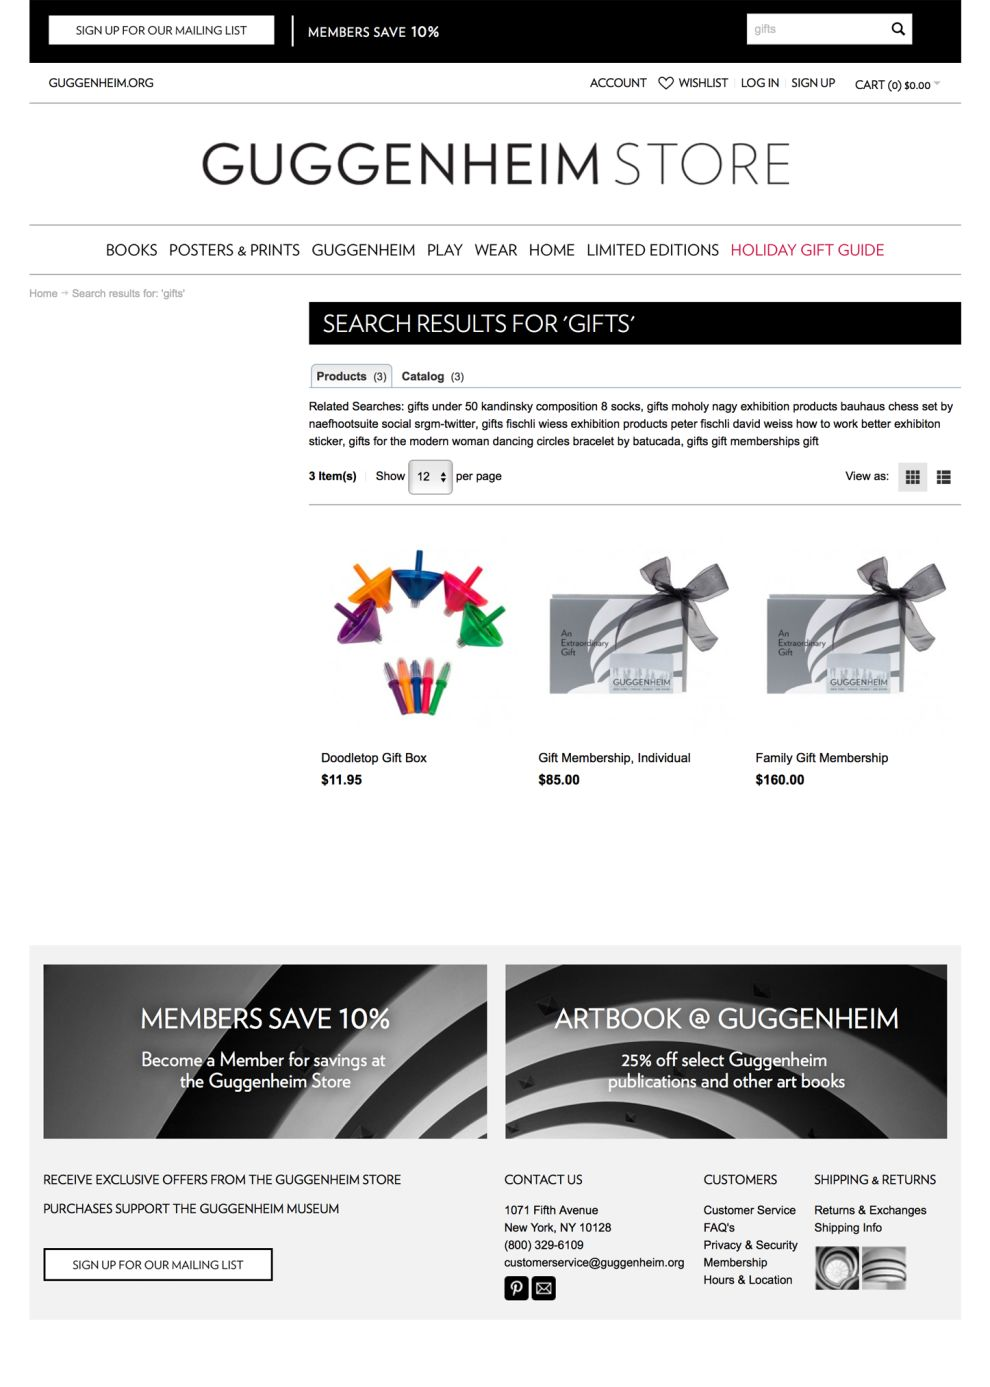 Guggenheim Clean Store Page